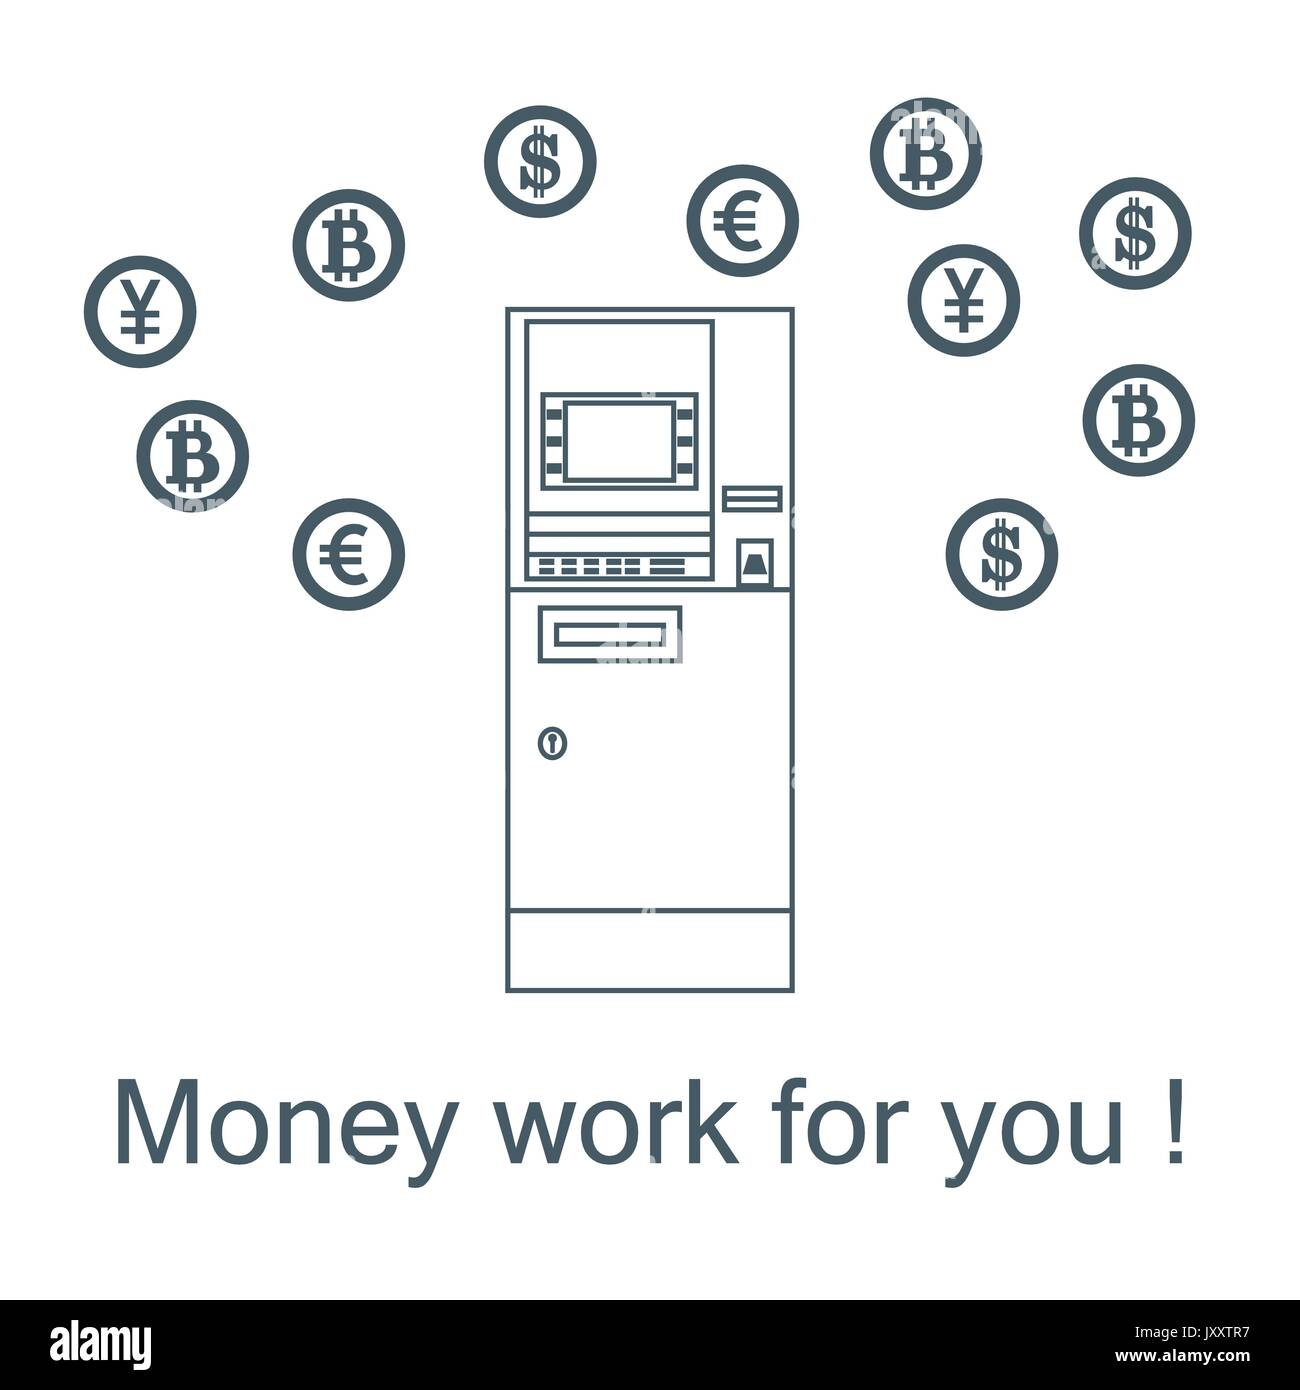 Stylized icon of a colored automatic teller machine or ATM and different types of currency and Bitcoins. Design for banner, poster or print. - Stock Image